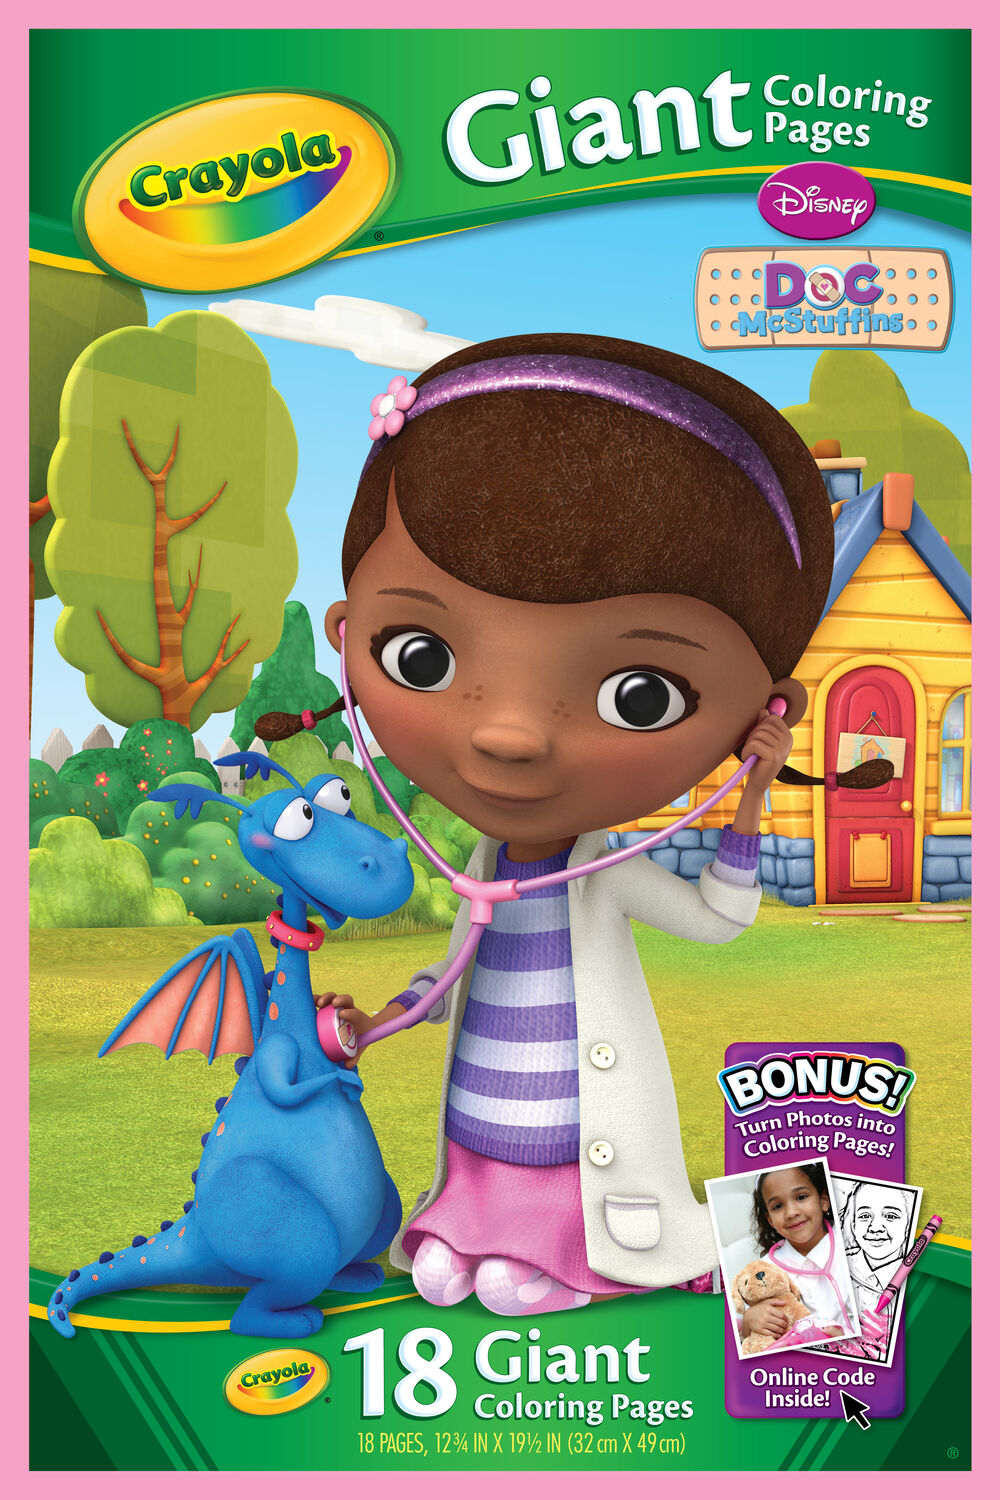 Doc mcstuffins coloring pages to color online - Giant Coloring Pages Doc Mcstuffins